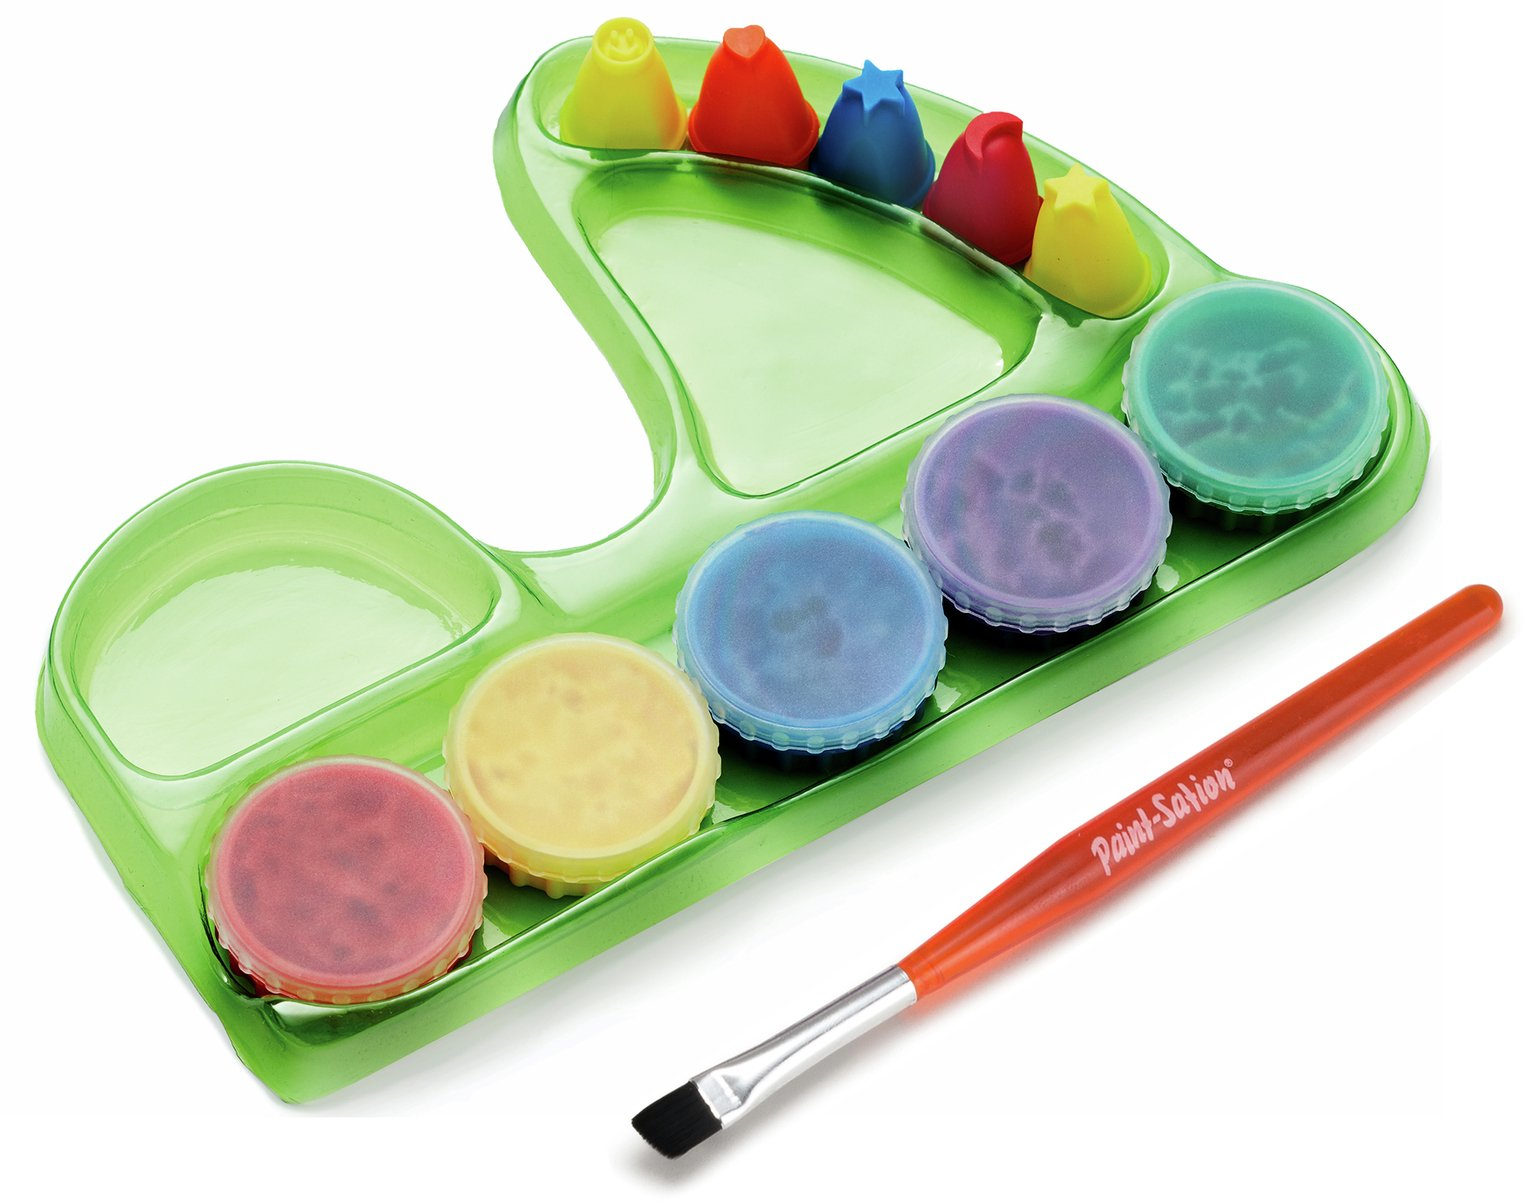 Paint Sation Mini Pod and Palette Set Mess Free and Washable